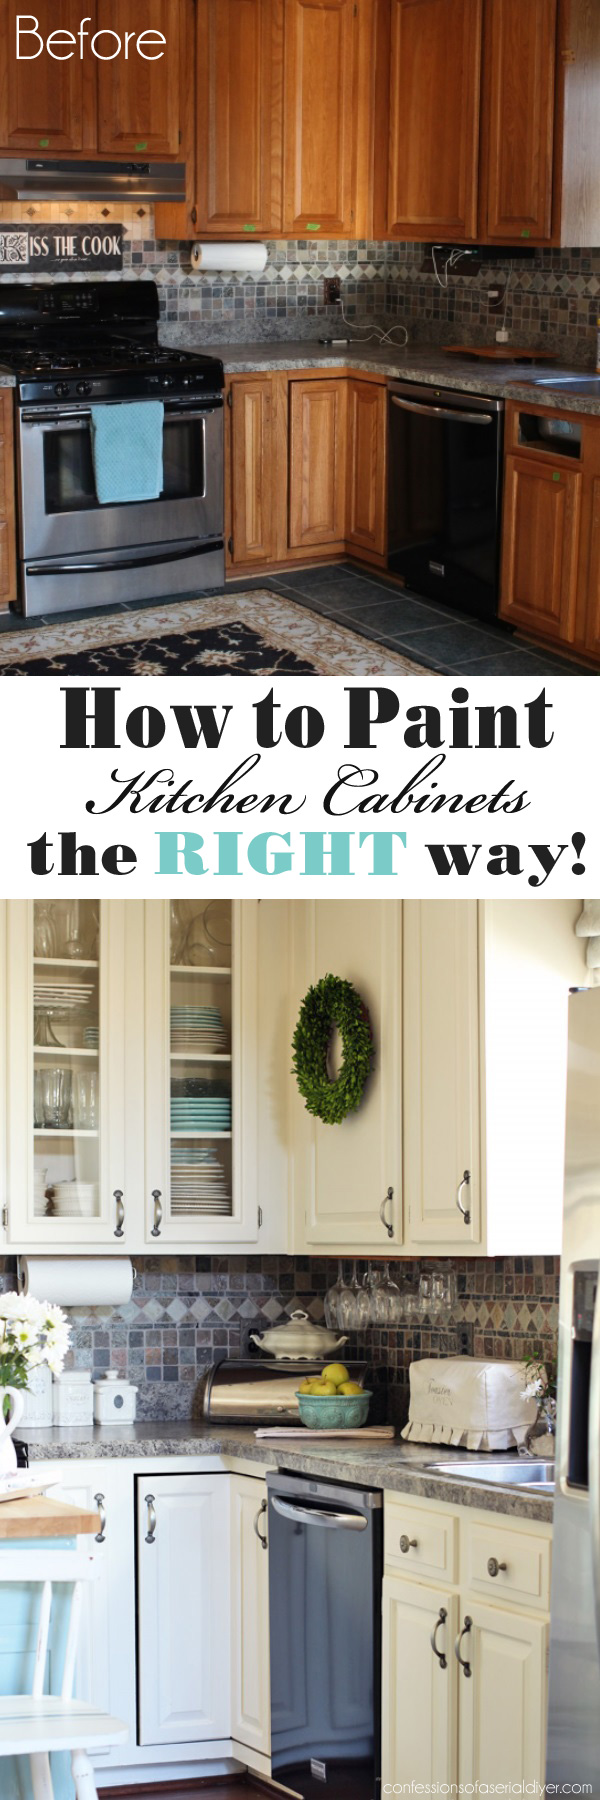 How to paint kitchen cabinets a step by step guide for Best way to paint kitchen cabinets white